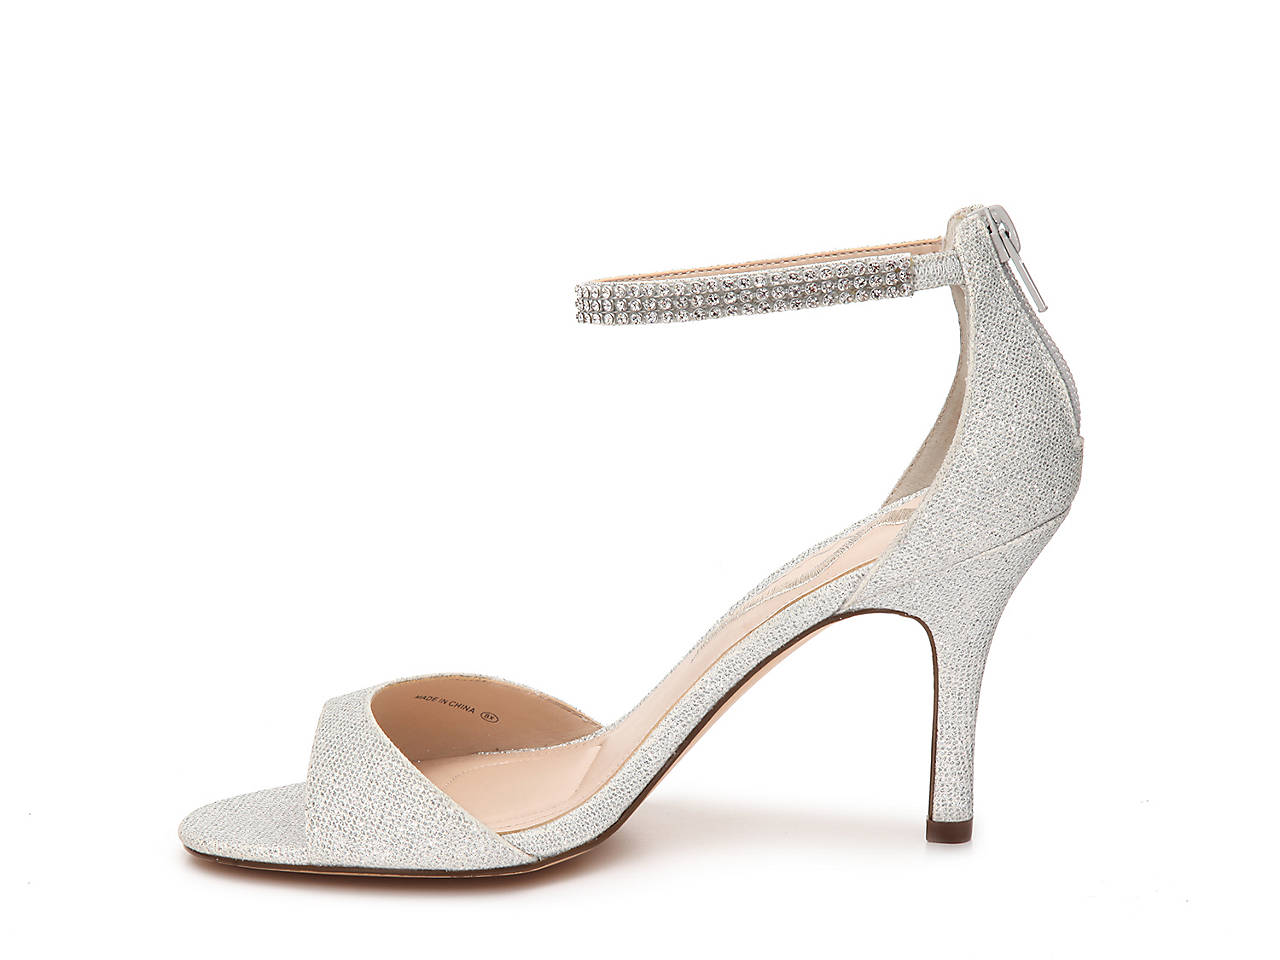 45534e0a2f31 Nina Varetta Sandal Women s Shoes